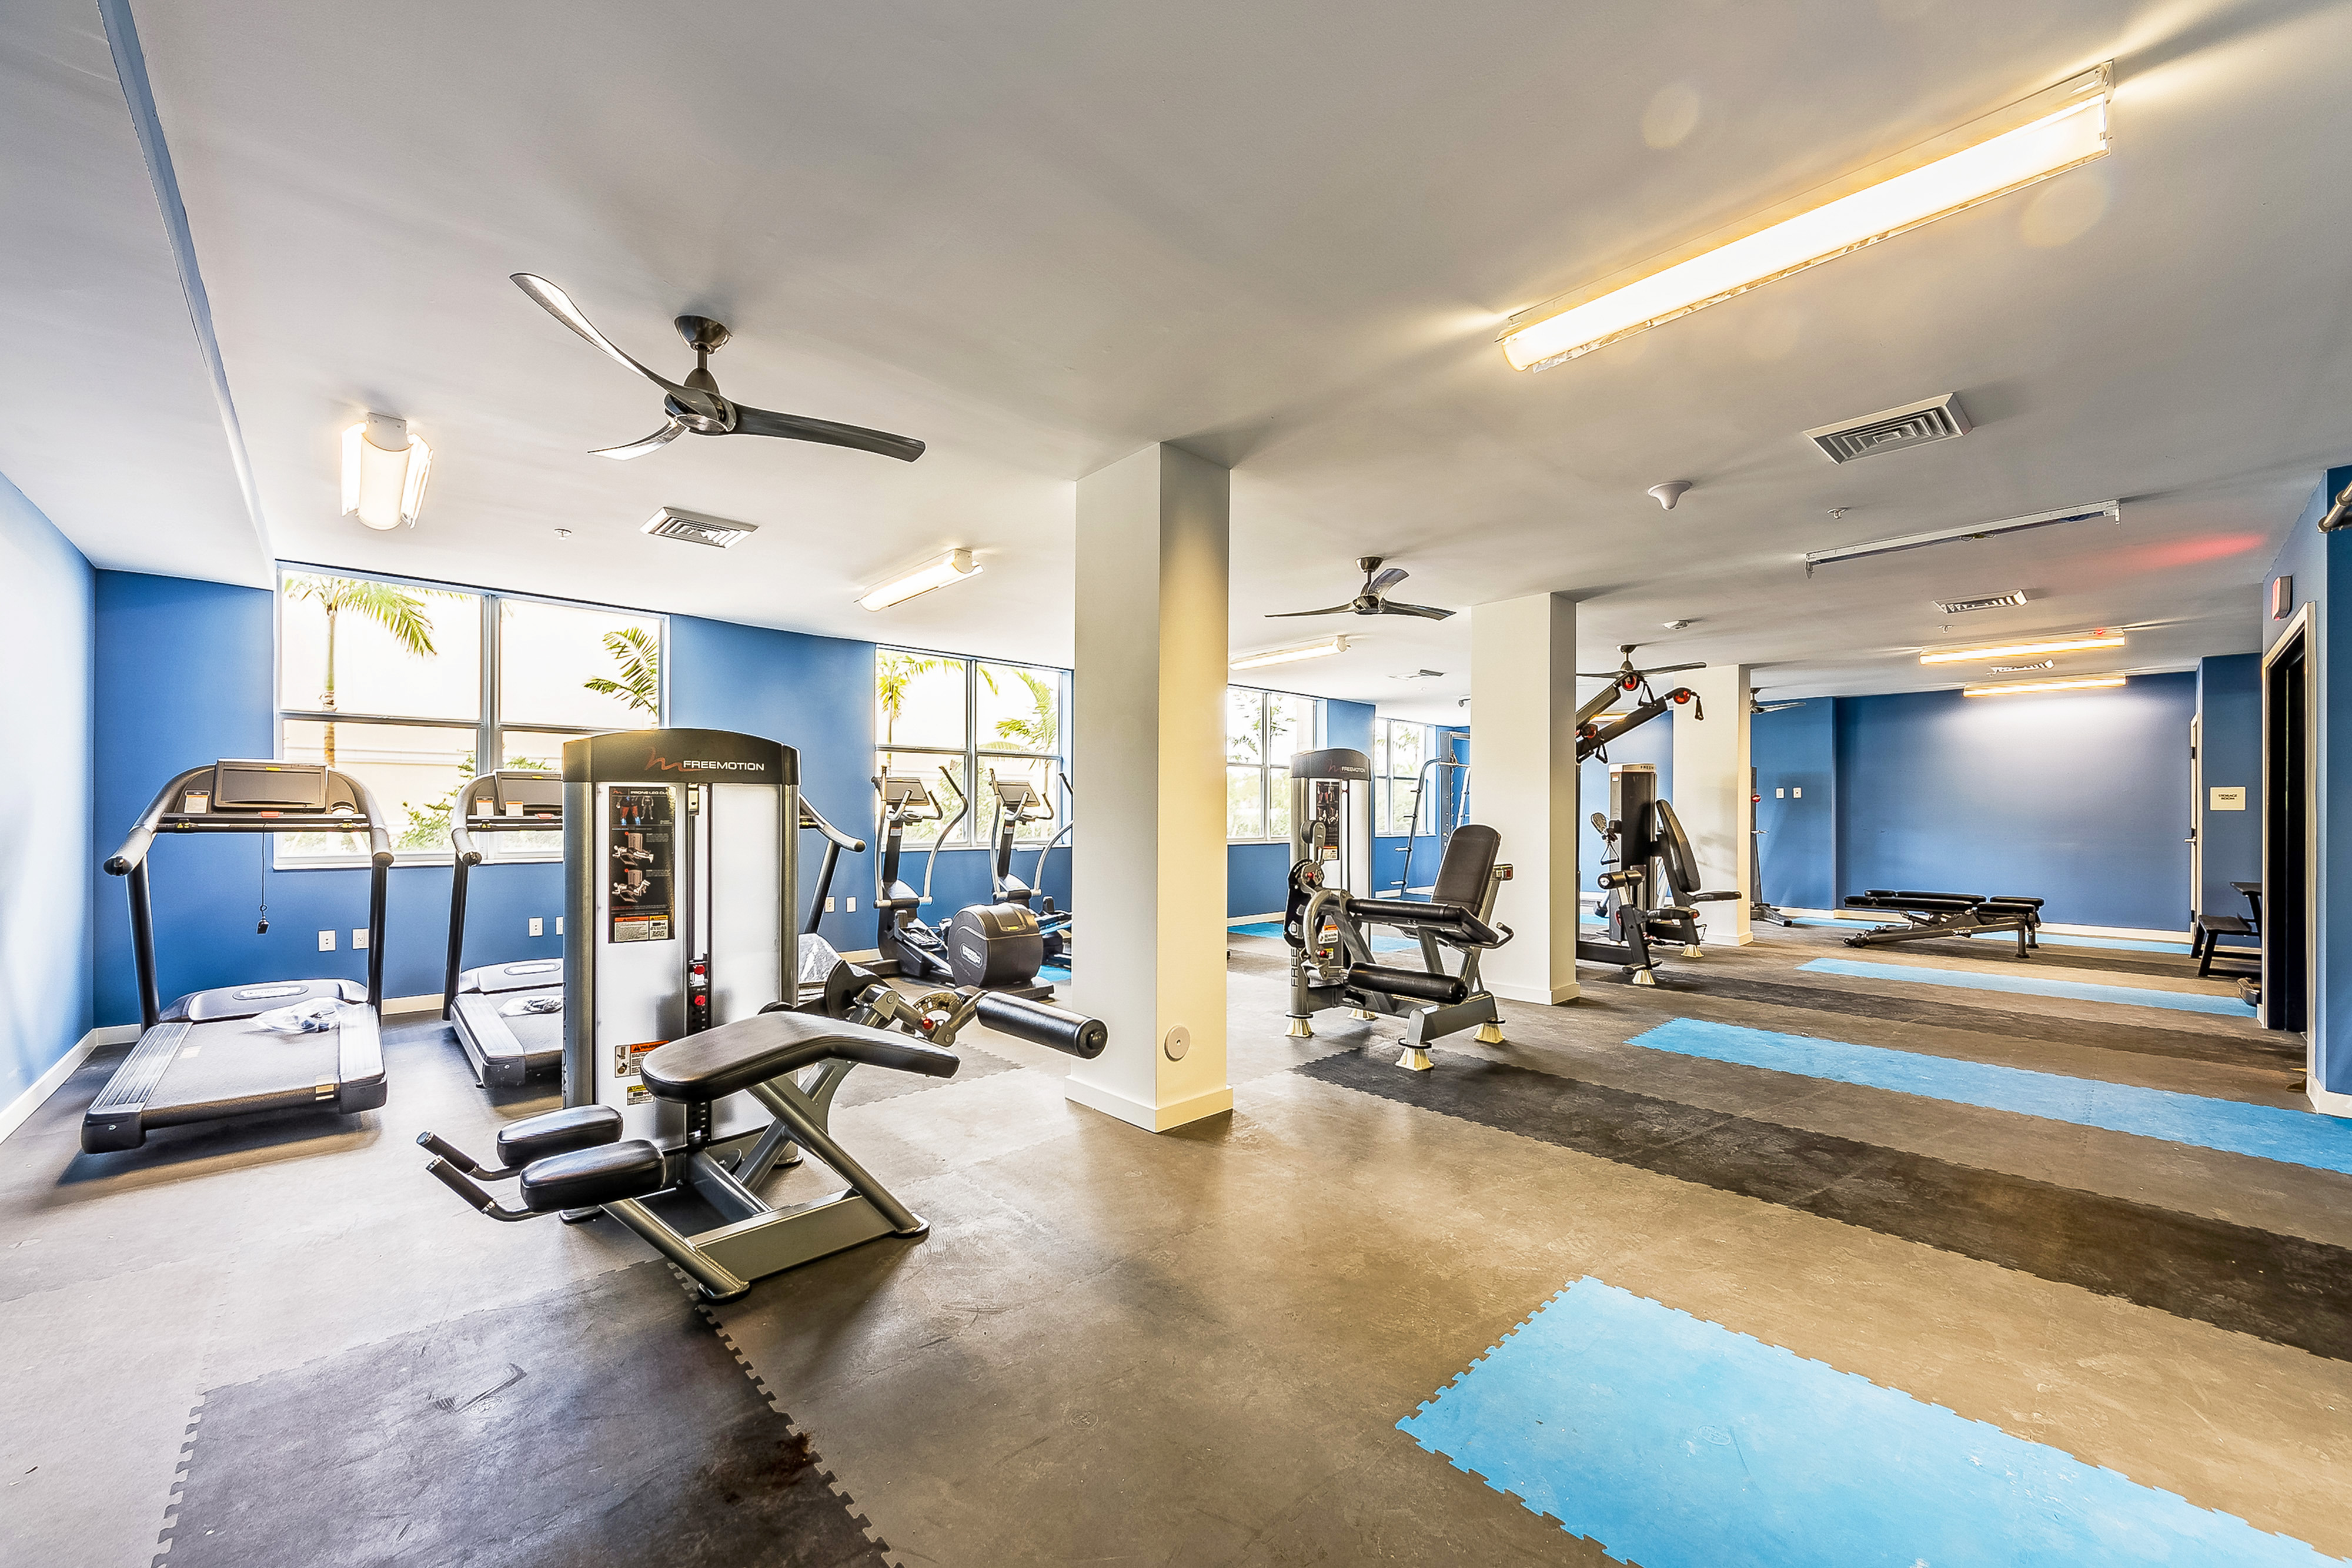 Fitness center with treadmills, workout benches, and various weight machines